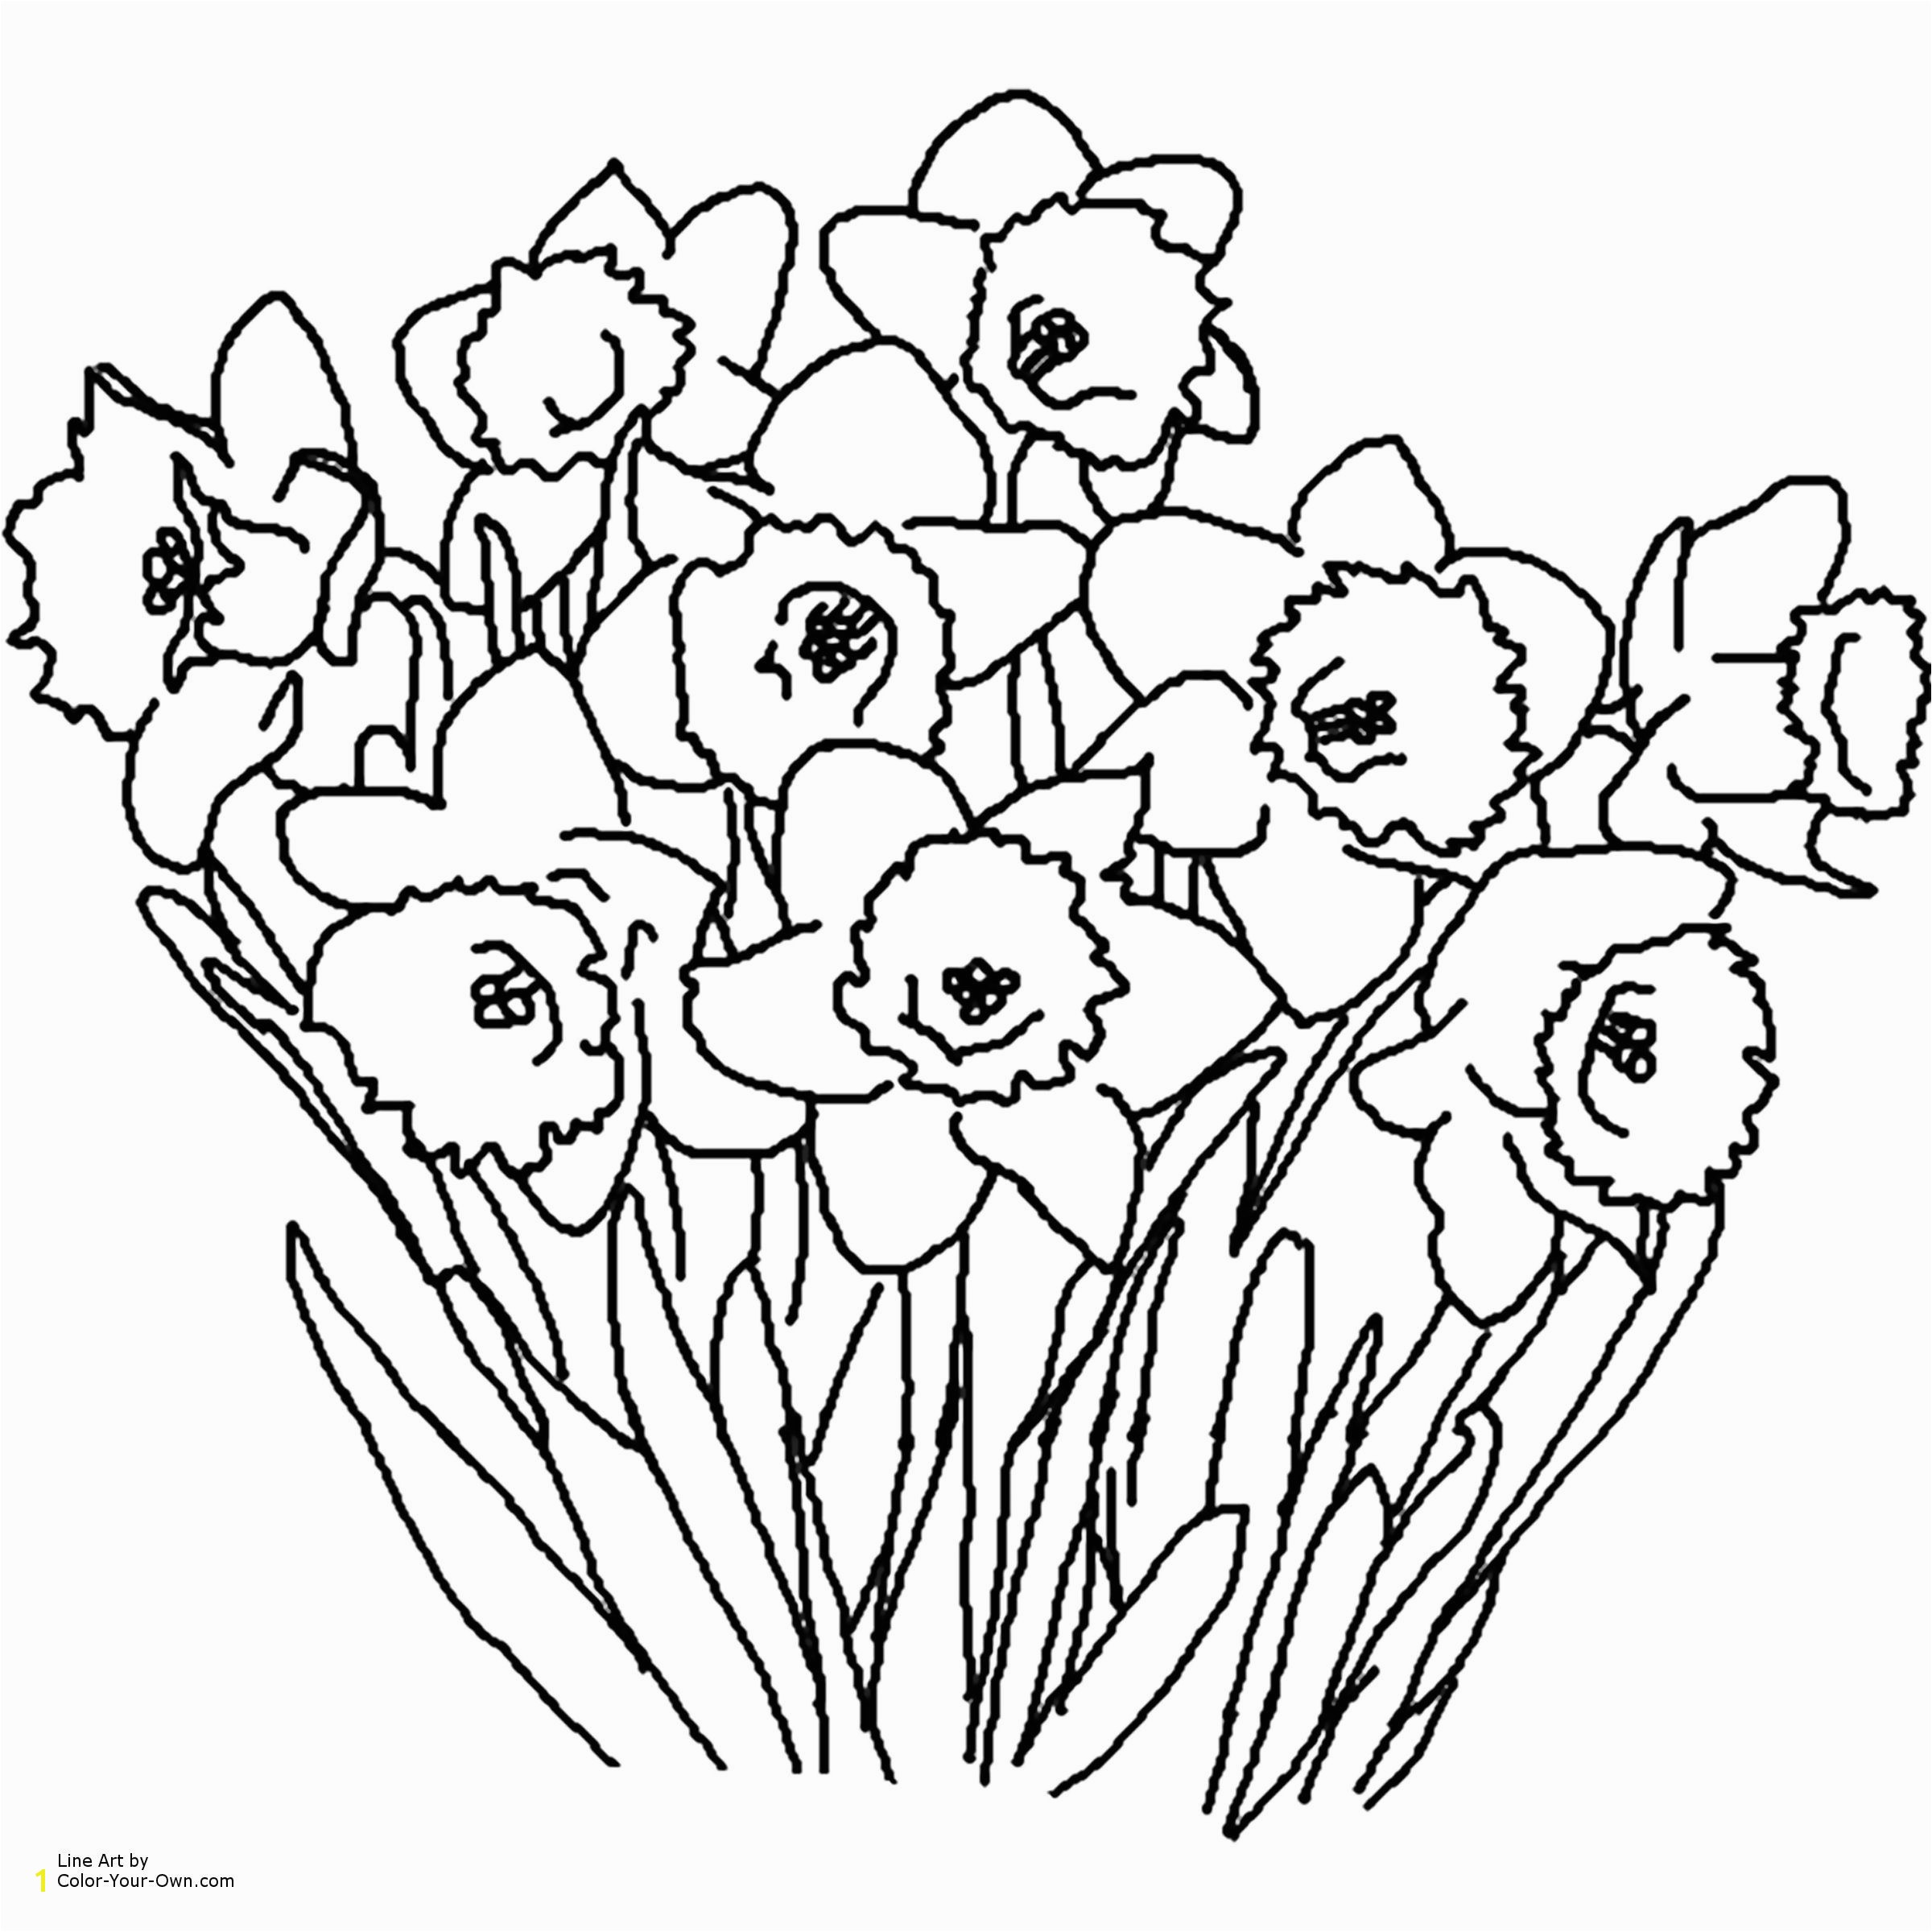 Flower Coloring Pages Printable for Adults New S S Media Cache Ak0 Pinimg originals 0d 1d 64